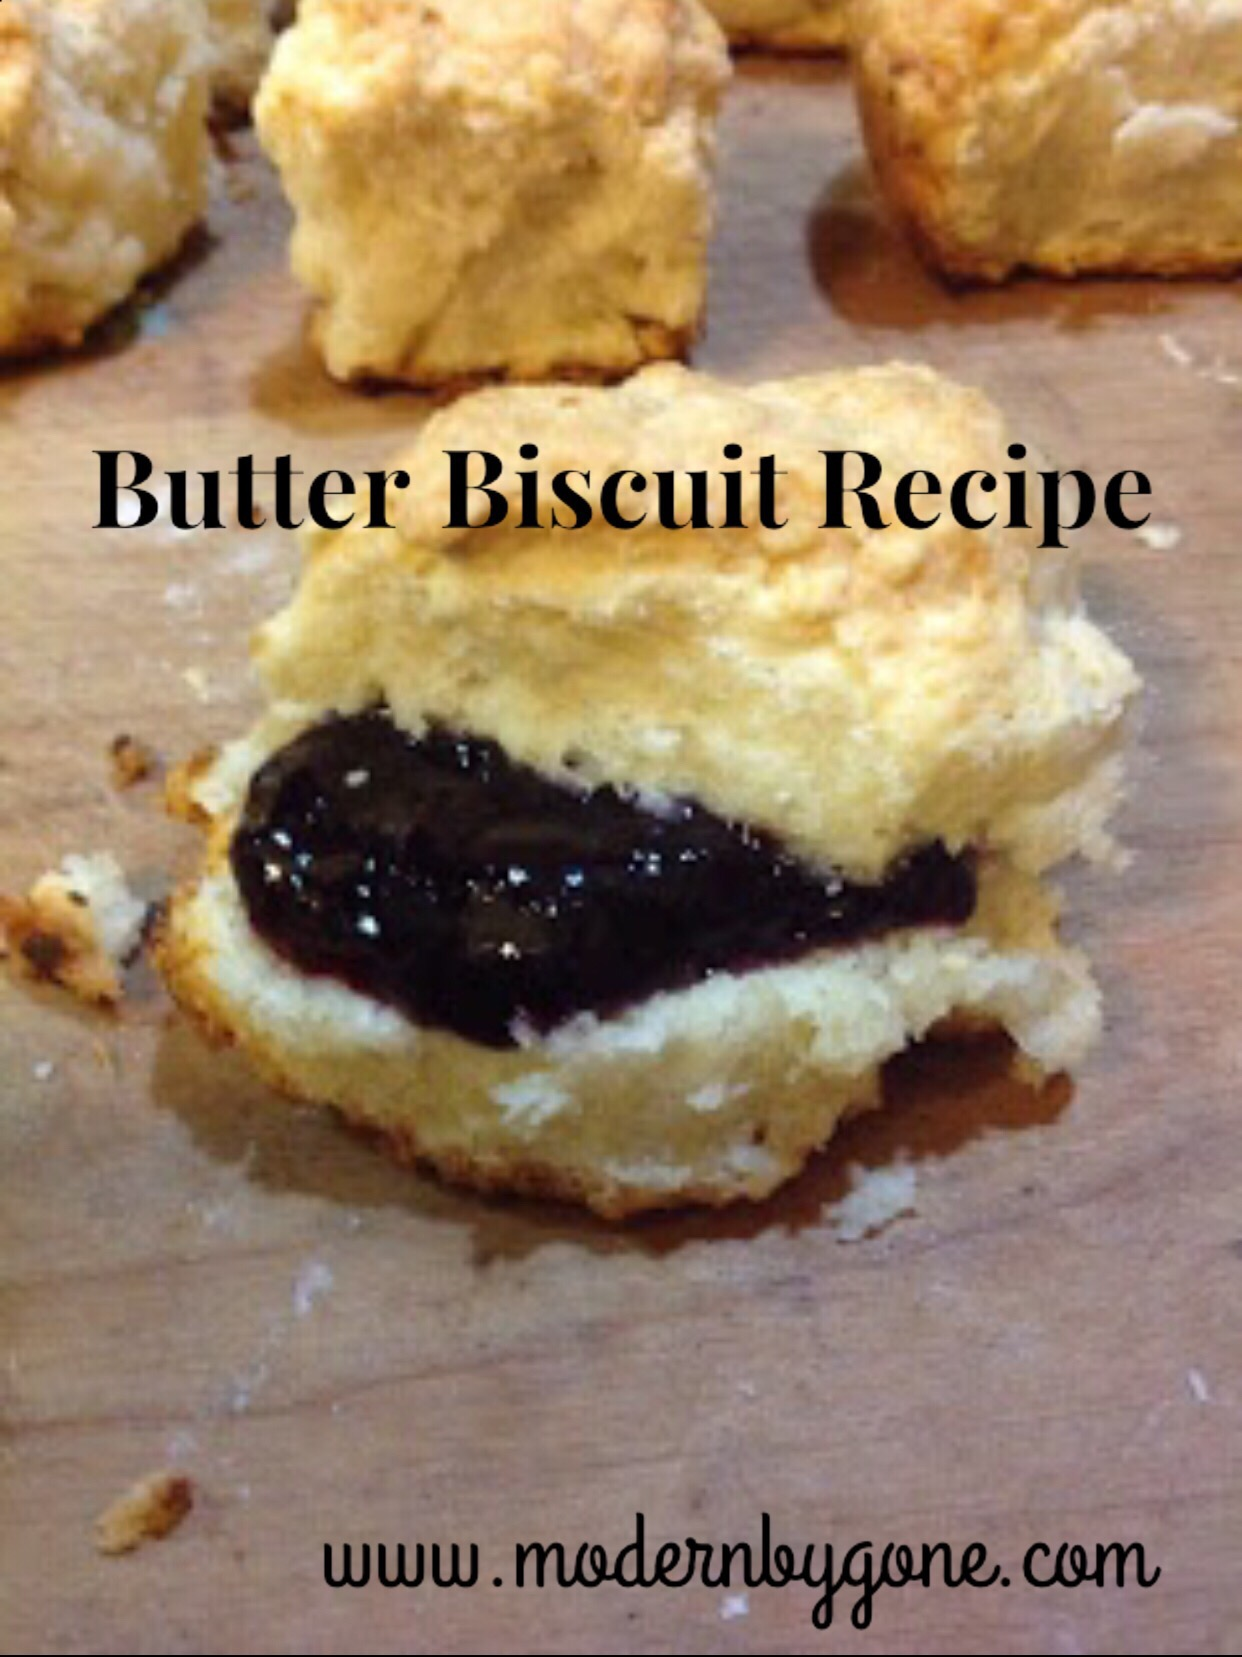 Butter Biscuit Recipe